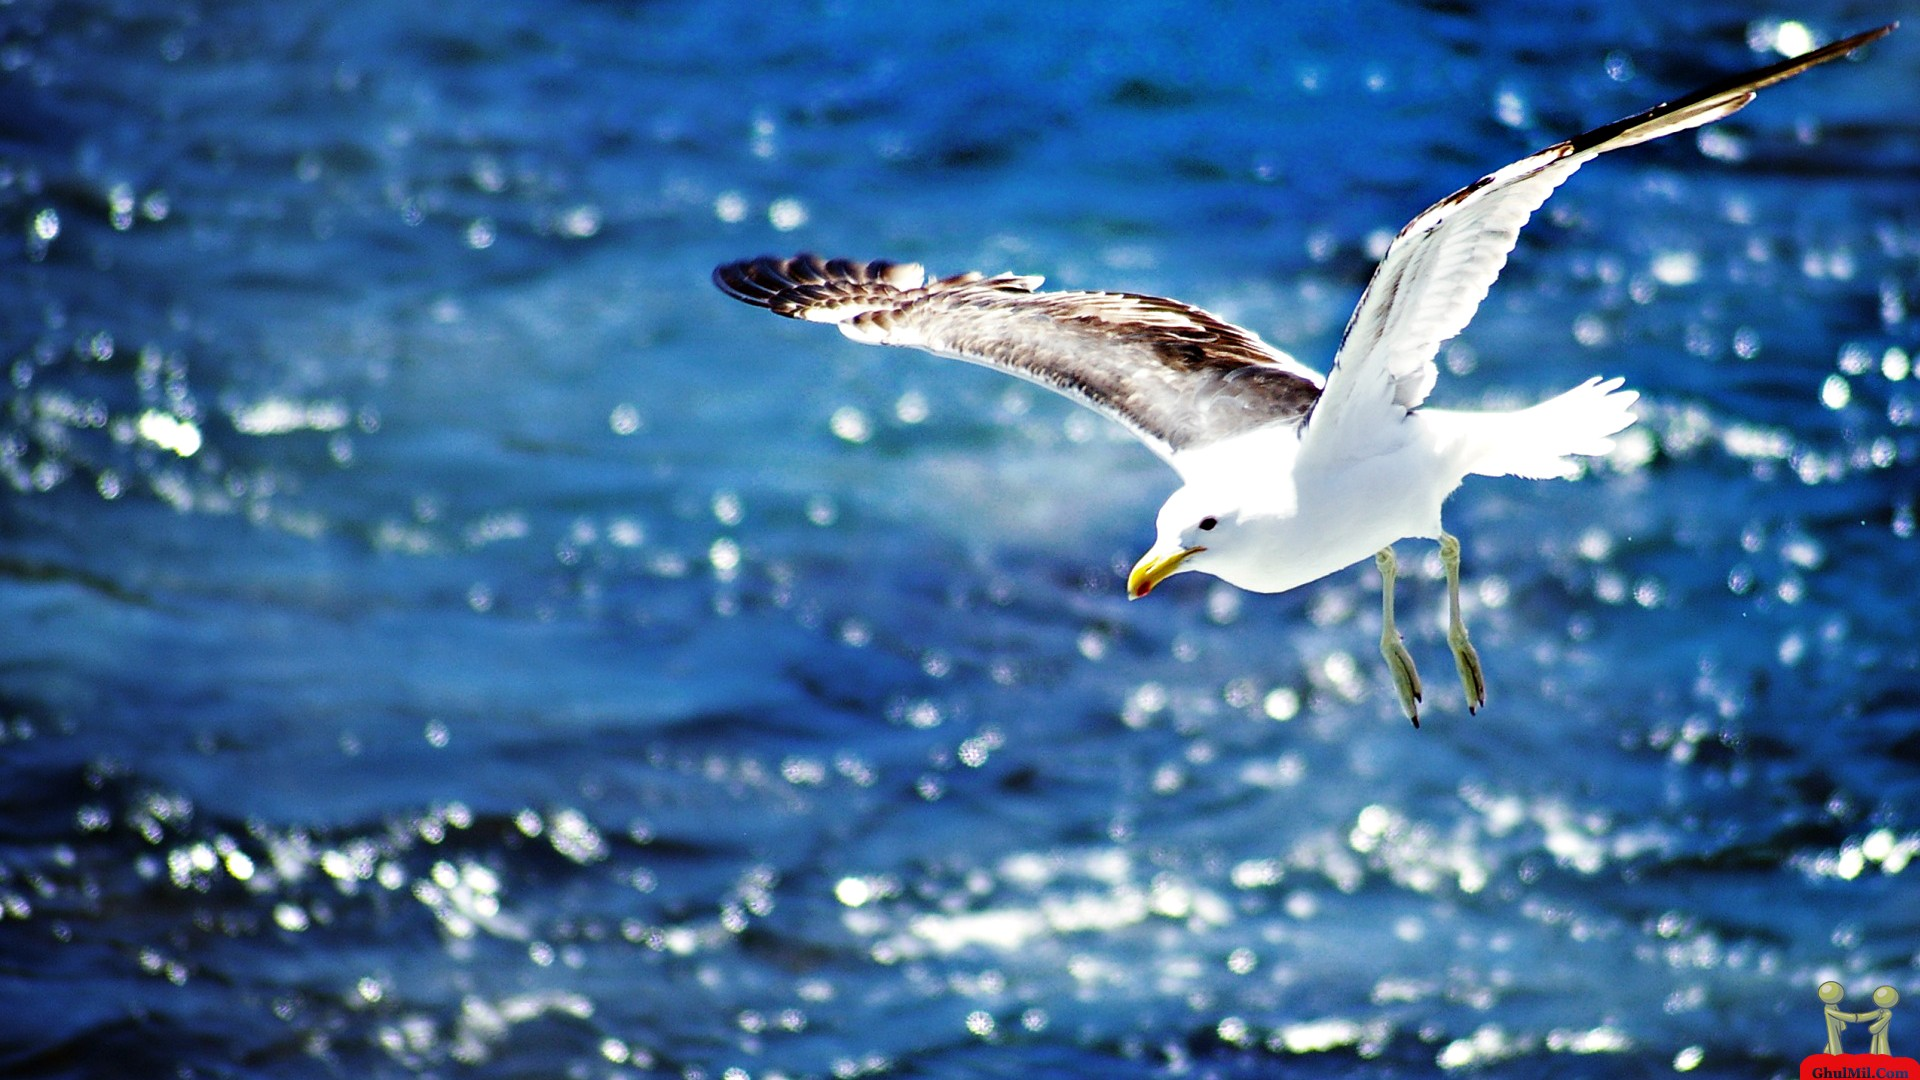 Beautiful-Flying-Seagull-HD-1920x1080-Need-iPhone-S-Plus-Background-for-wallpaper-wp3603116